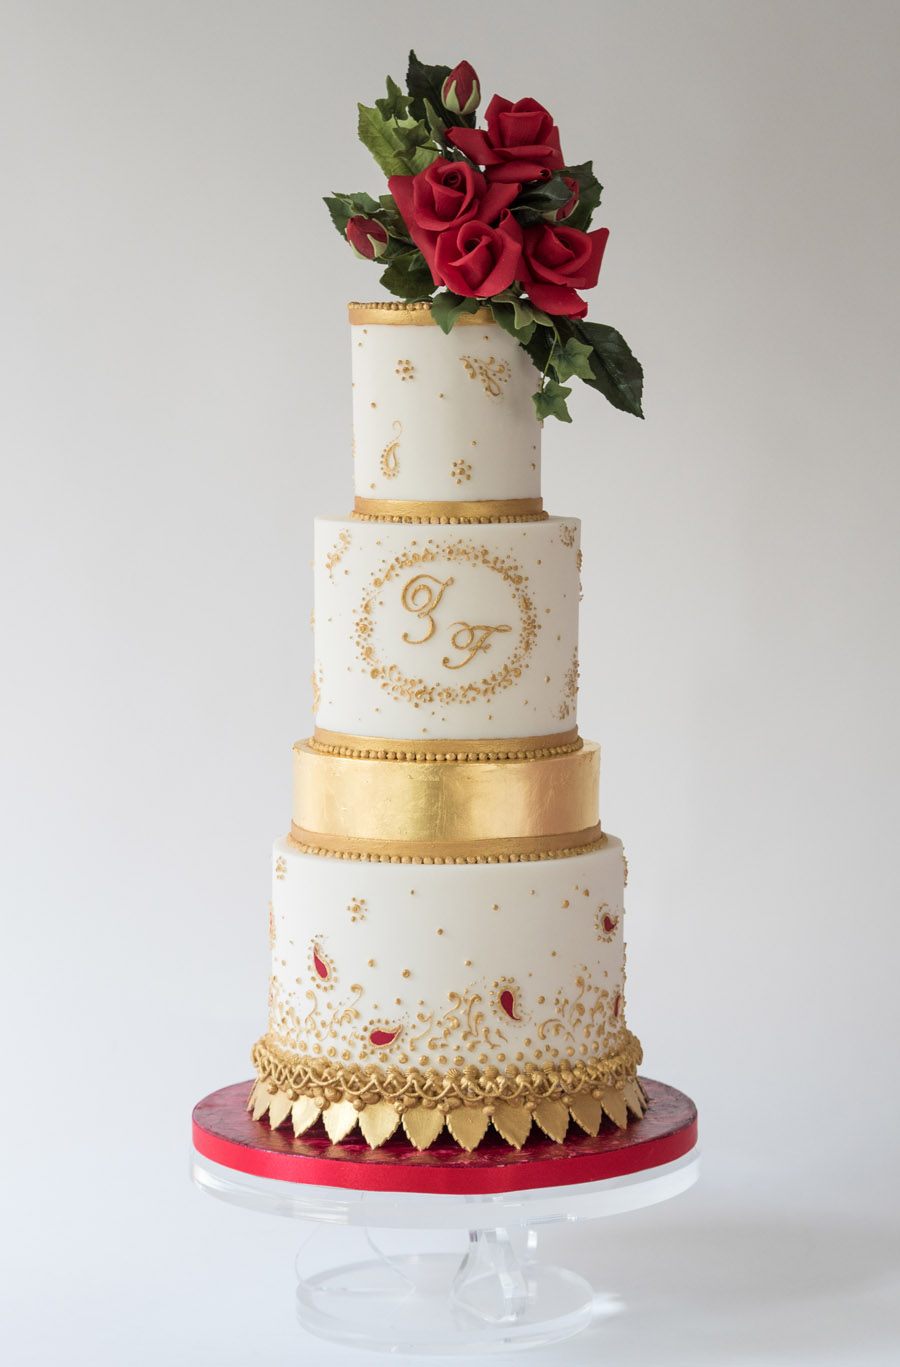 Beautiful wedding cakes by The Frostery - trends and ideas for 2019 (3)